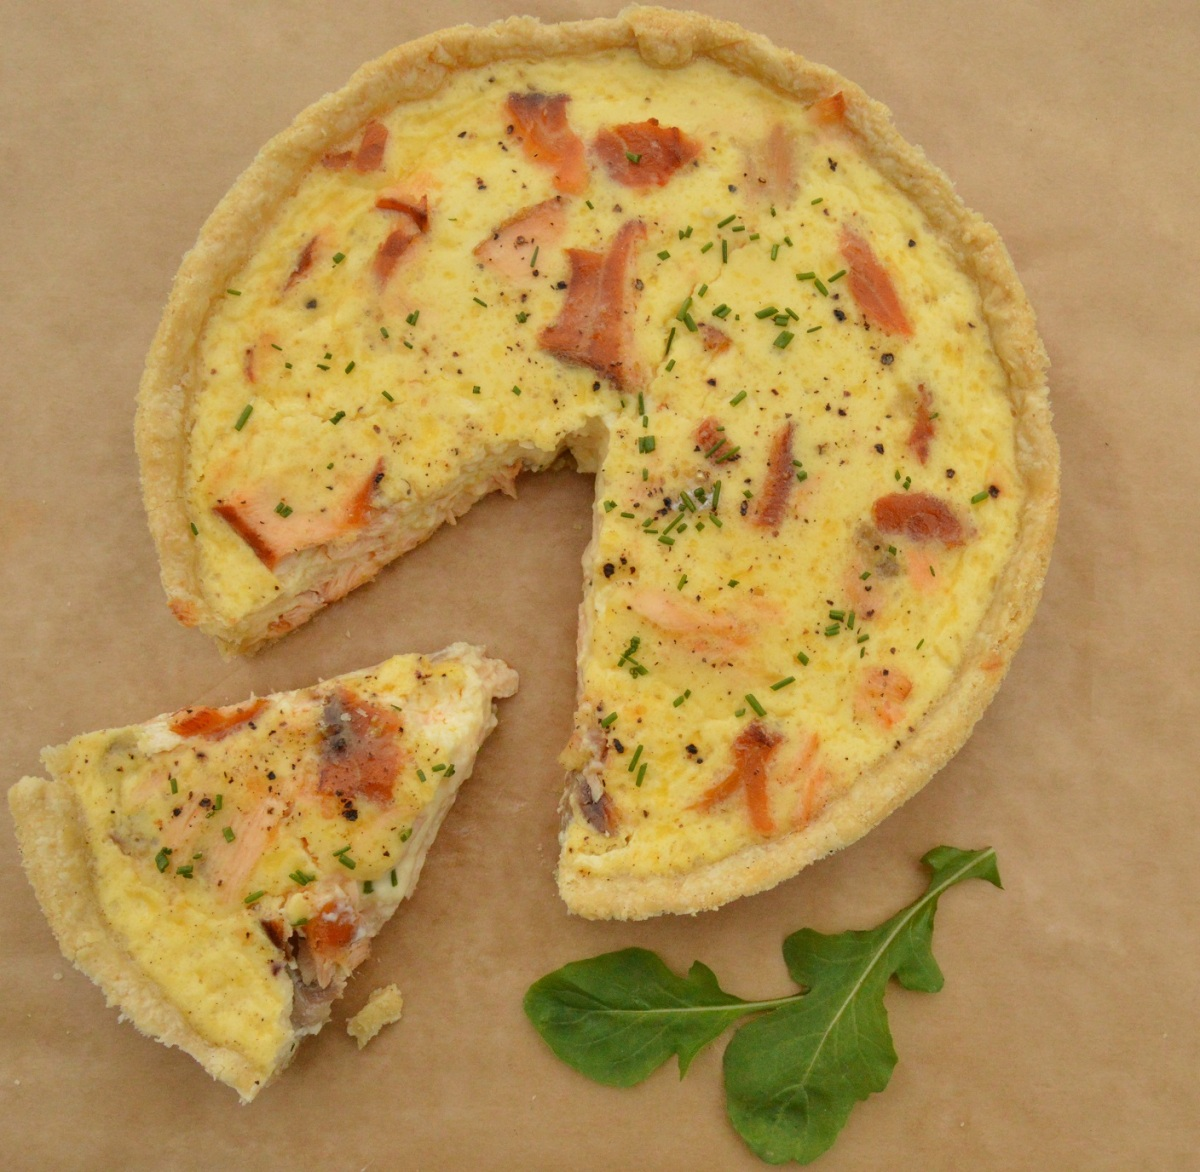 Hot-smoked salmon & horseradish tart (low-fat)